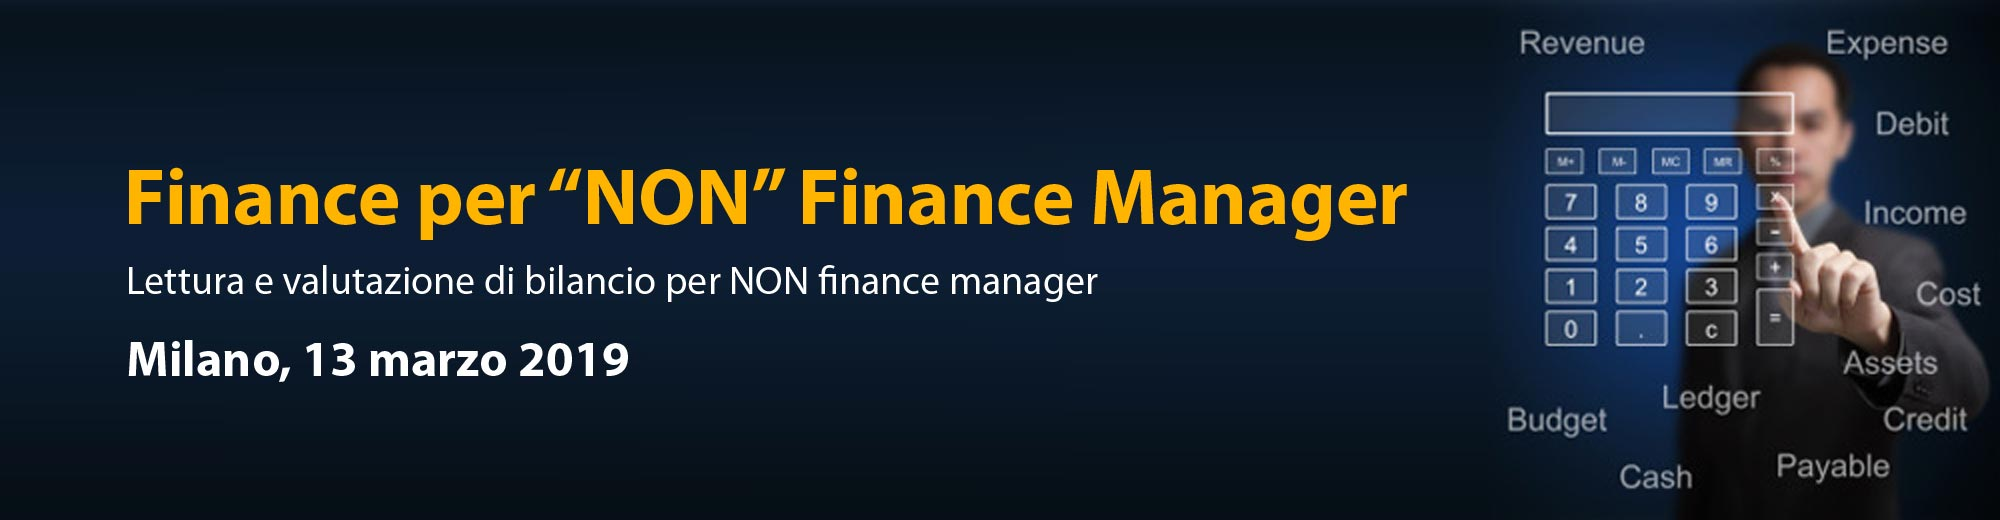 Finance per NON Finance Manager